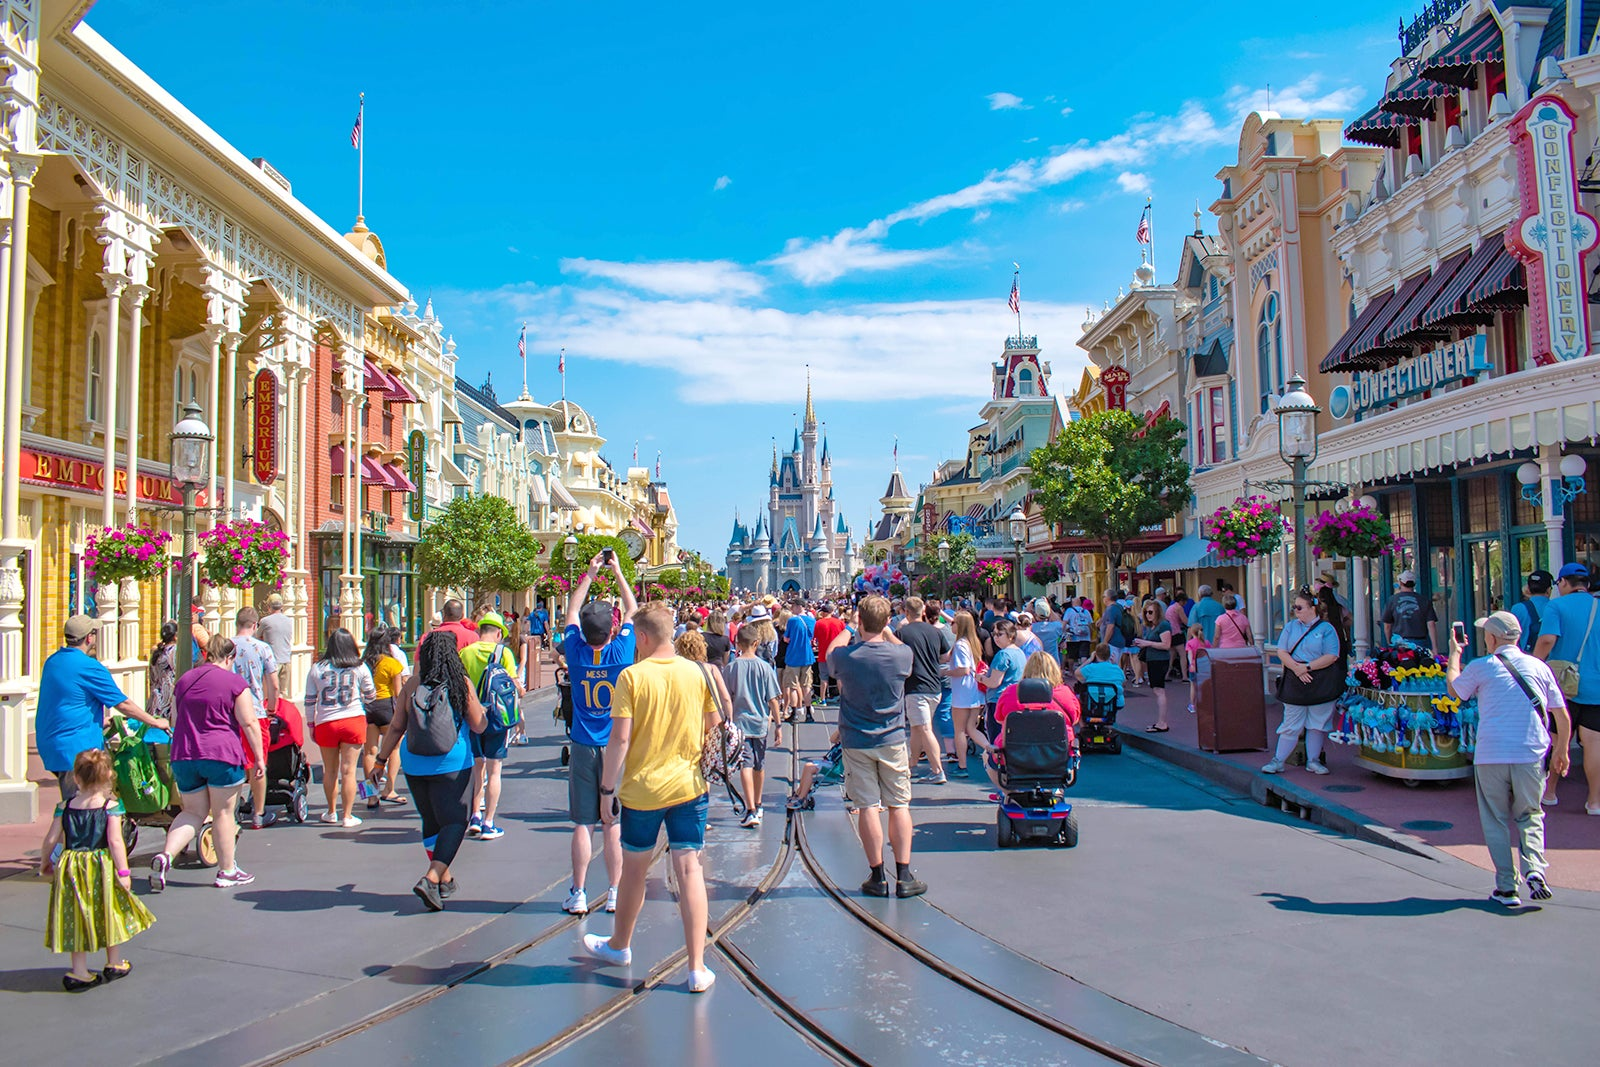 8 Best Things to Do in Disney World Florida - What is Disney ... Downtown Disney Orlando Map on kennedy space center orlando map, disney quest orlando map, universal studios orlando map, epcot map, shopping orlando map, florida citrus bowl parking map, wilderness lodge orlando map, cocoa beach orlando map, millenia mall orlando map, animal kingdom map, fort wilderness orlando map, house of blues orlando map, west side of the world map, arabian nights orlando map, islands of adventure orlando map, original magic kingdom map, disney studios orlando map, hollywood orlando map, boardwalk orlando map,